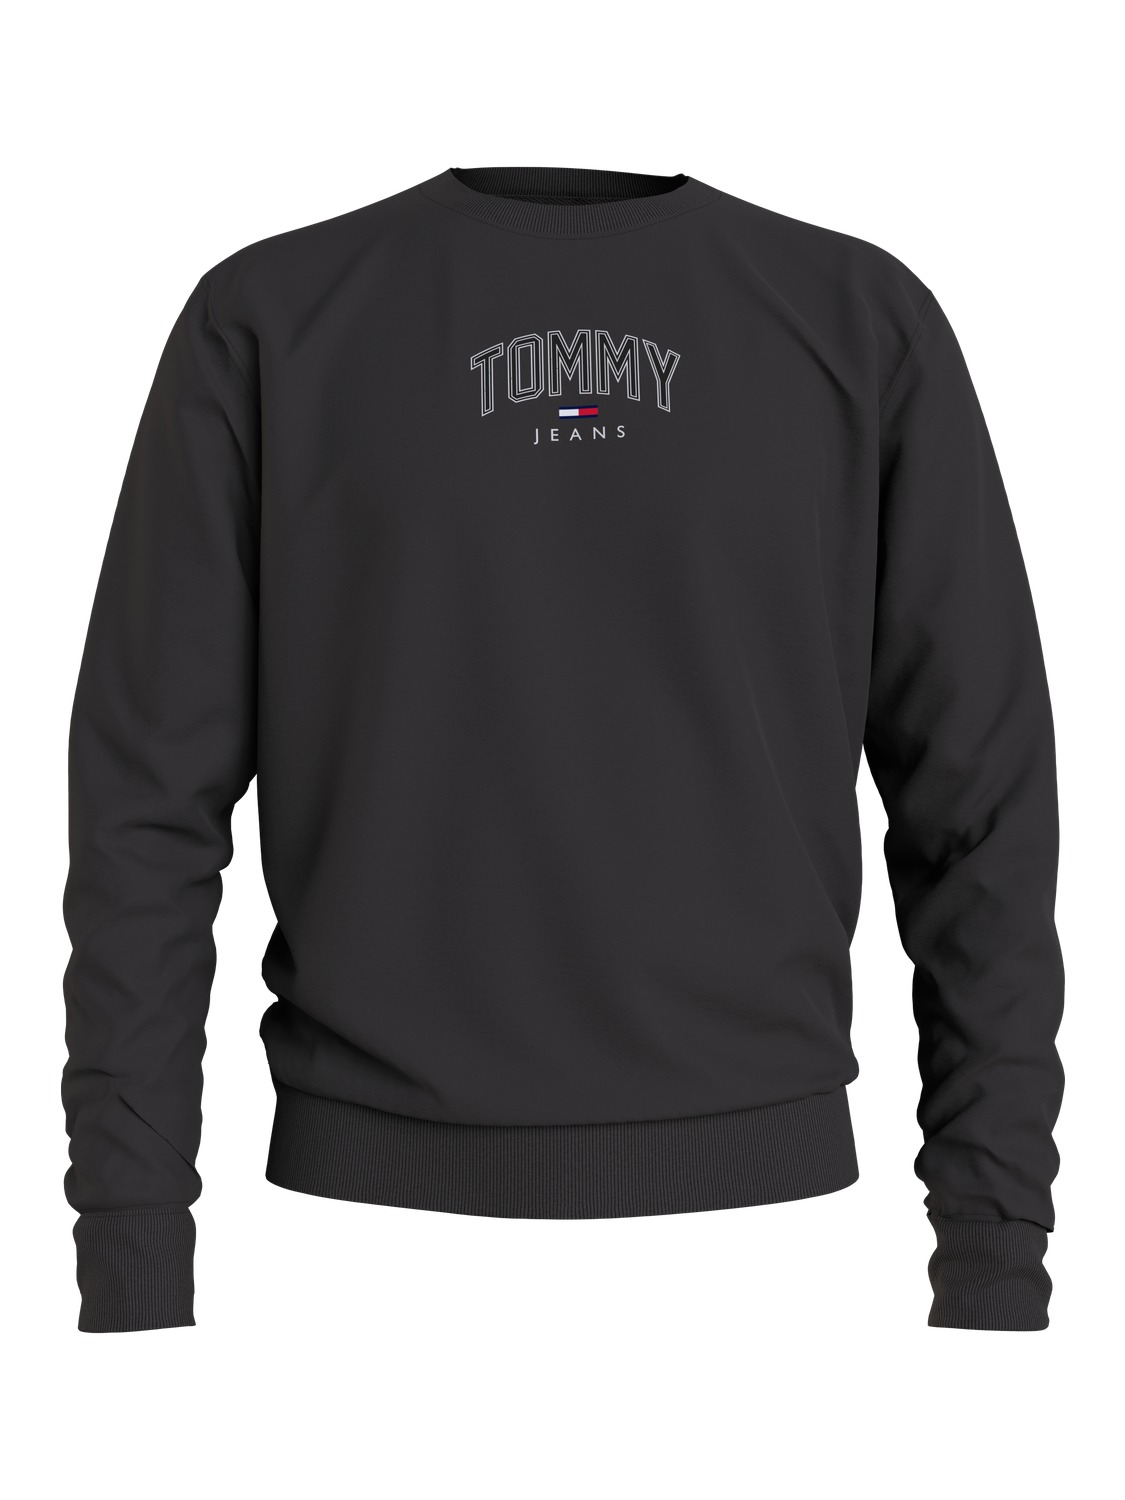 TOMMY JEANS - LIGHTWEIGHT CREW BLACK | Gate36 Hobro